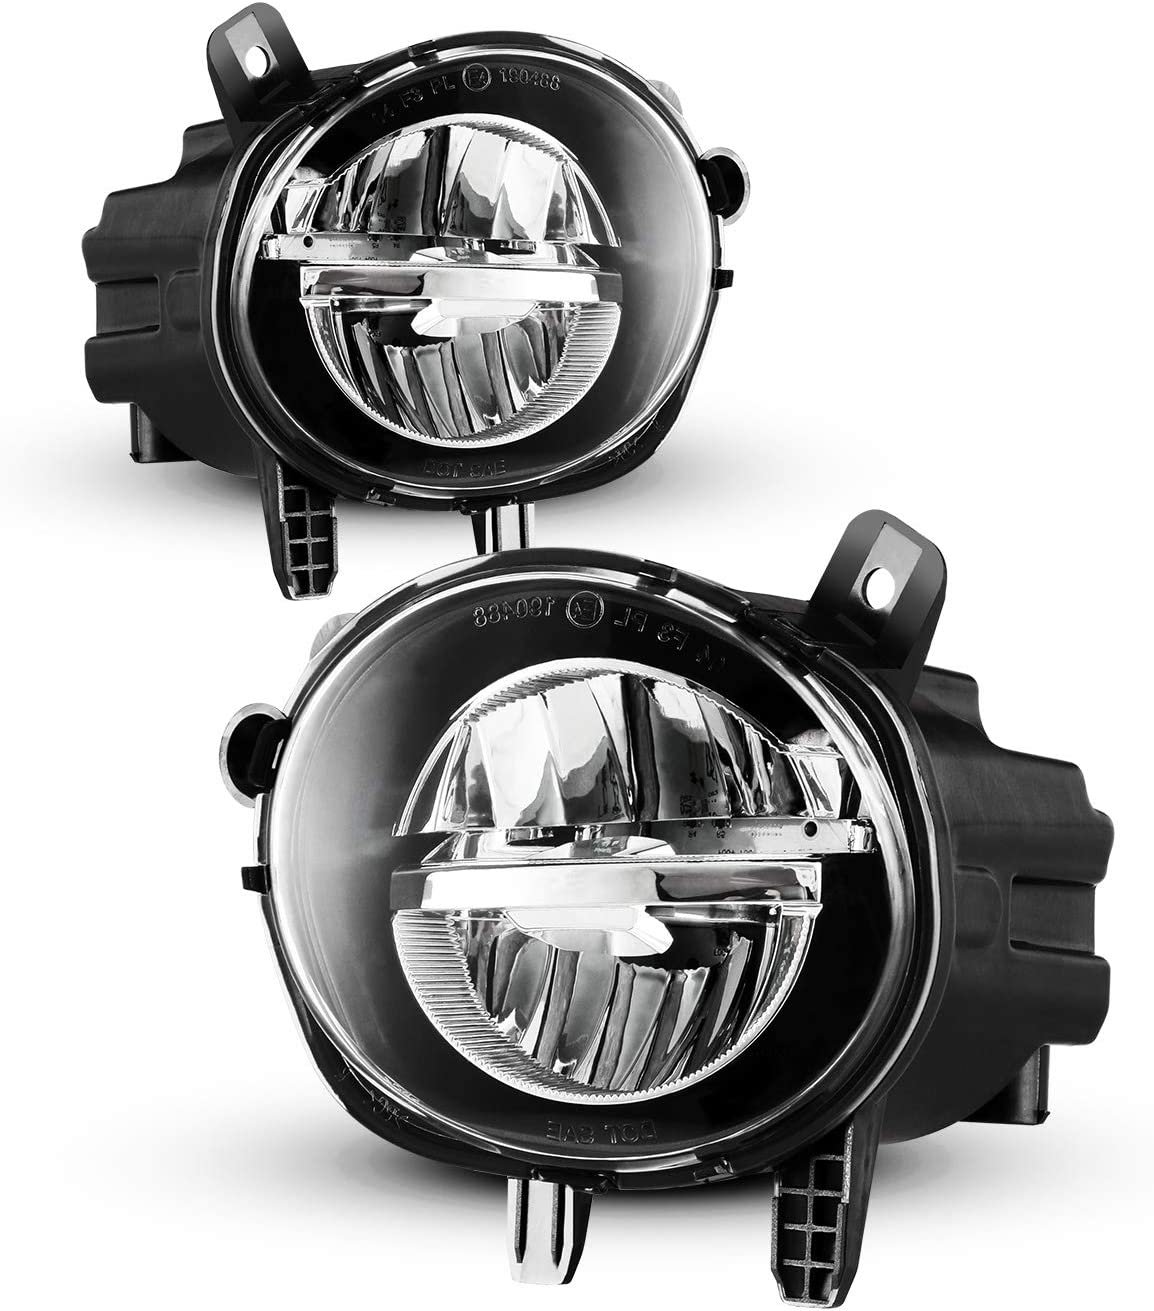 LED Fog Lights Fit For 2012-2018 BMW F30 3 Series// 2014-2019 BMW F32 F33 F36 4 Series 2PCS LED Fog Lamps With Clear Lens AUTOWIKI